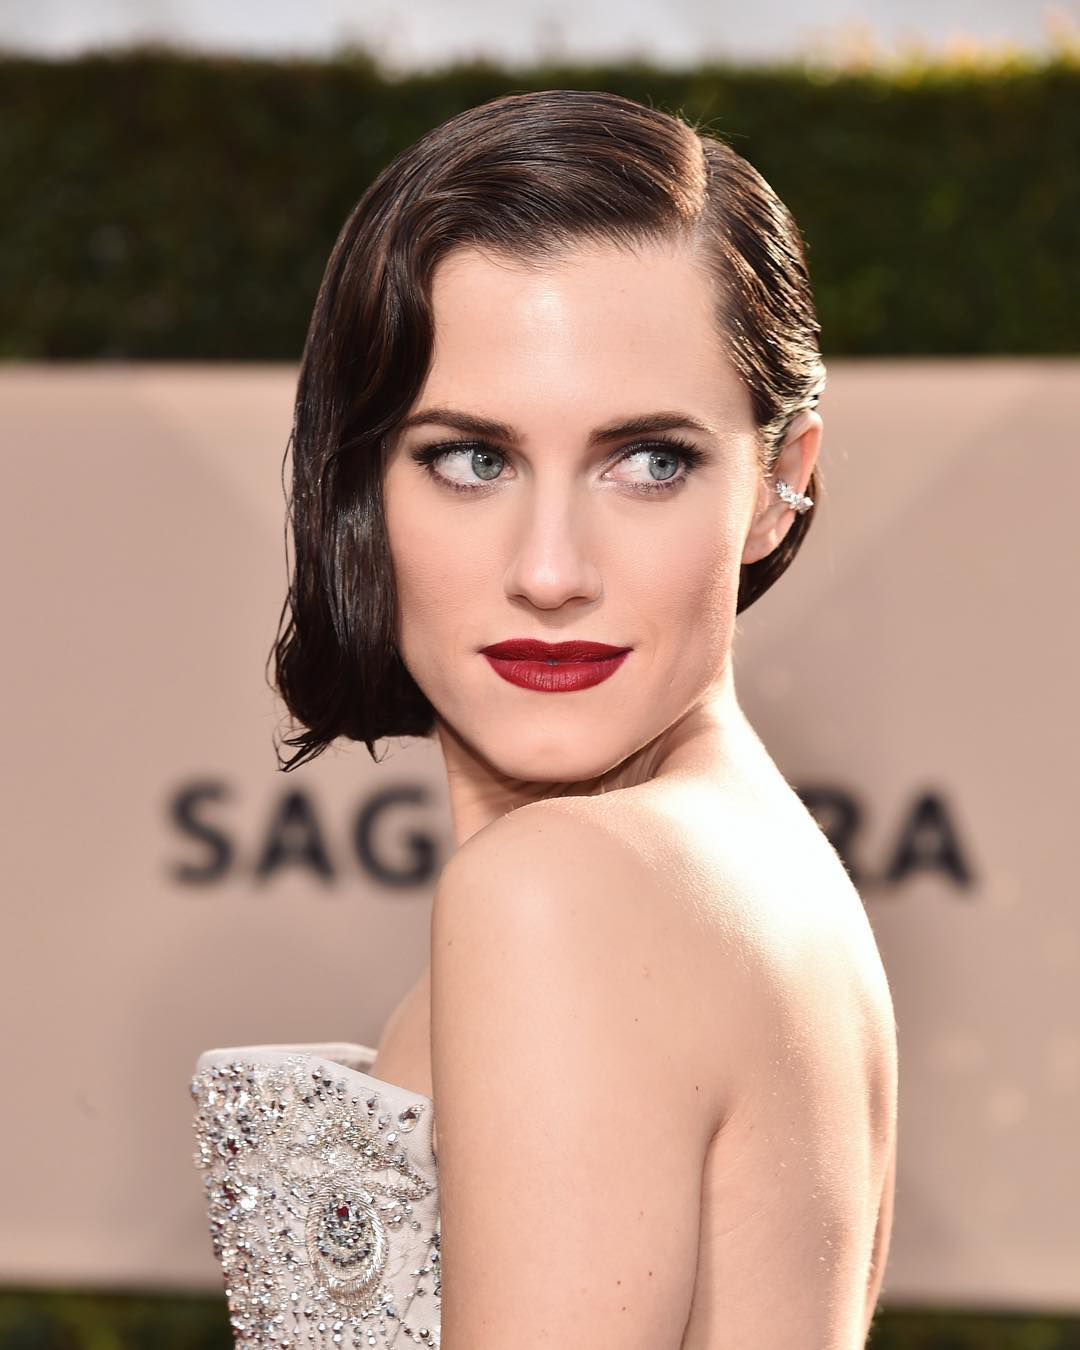 SAG Awards 2018 Beauty Allison Williams